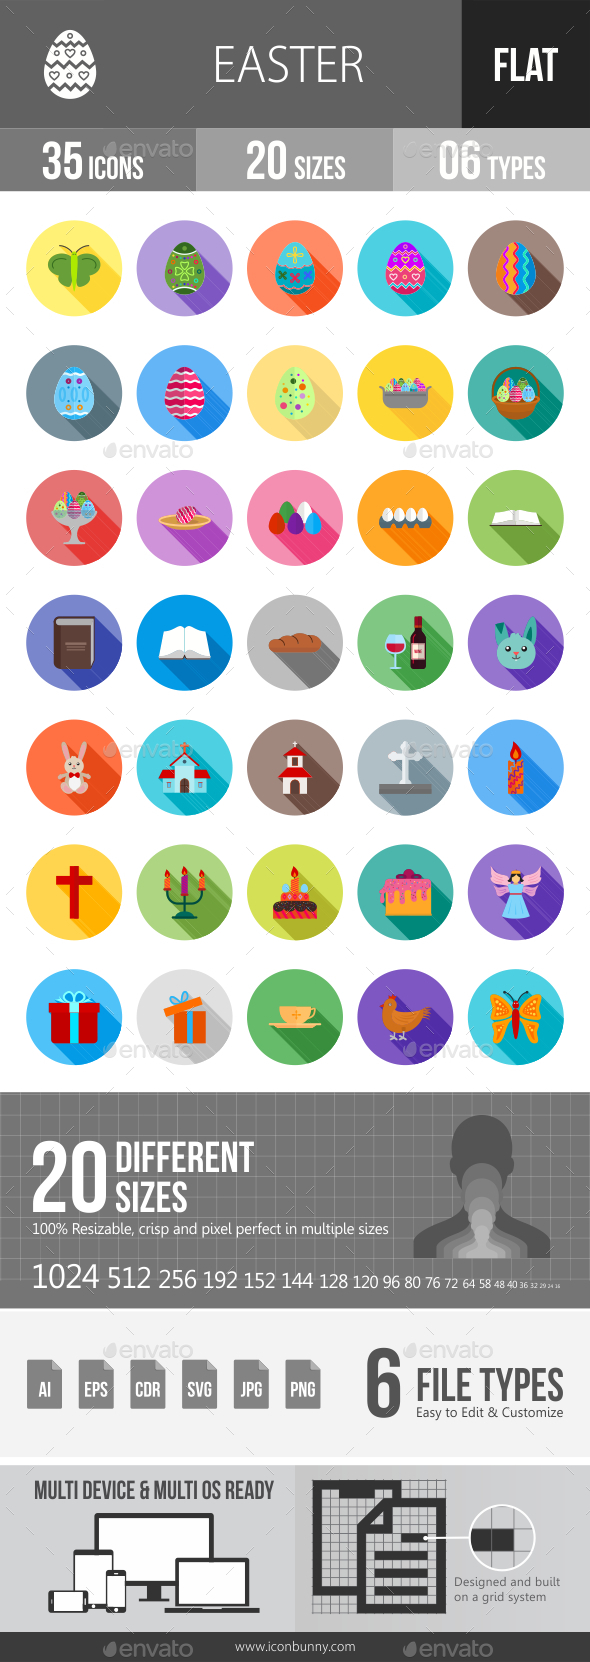 Easter Flat Shadowed Icons